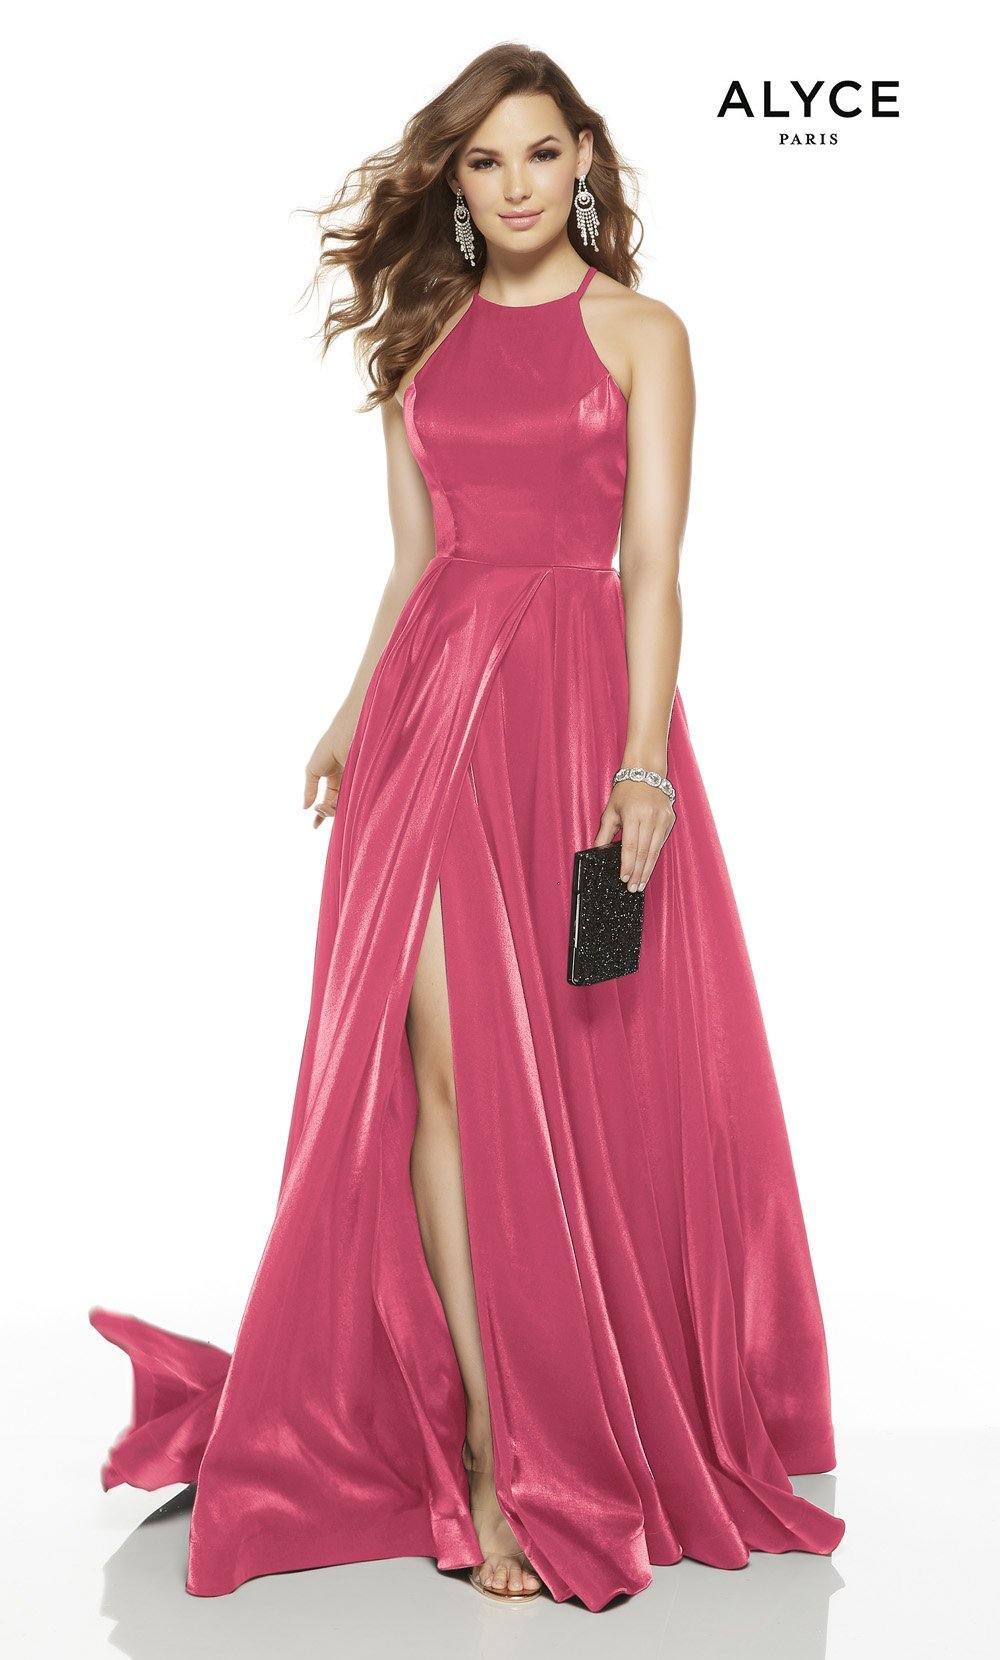 Bubblegum red-carpet dress with a halter neckline and a slit